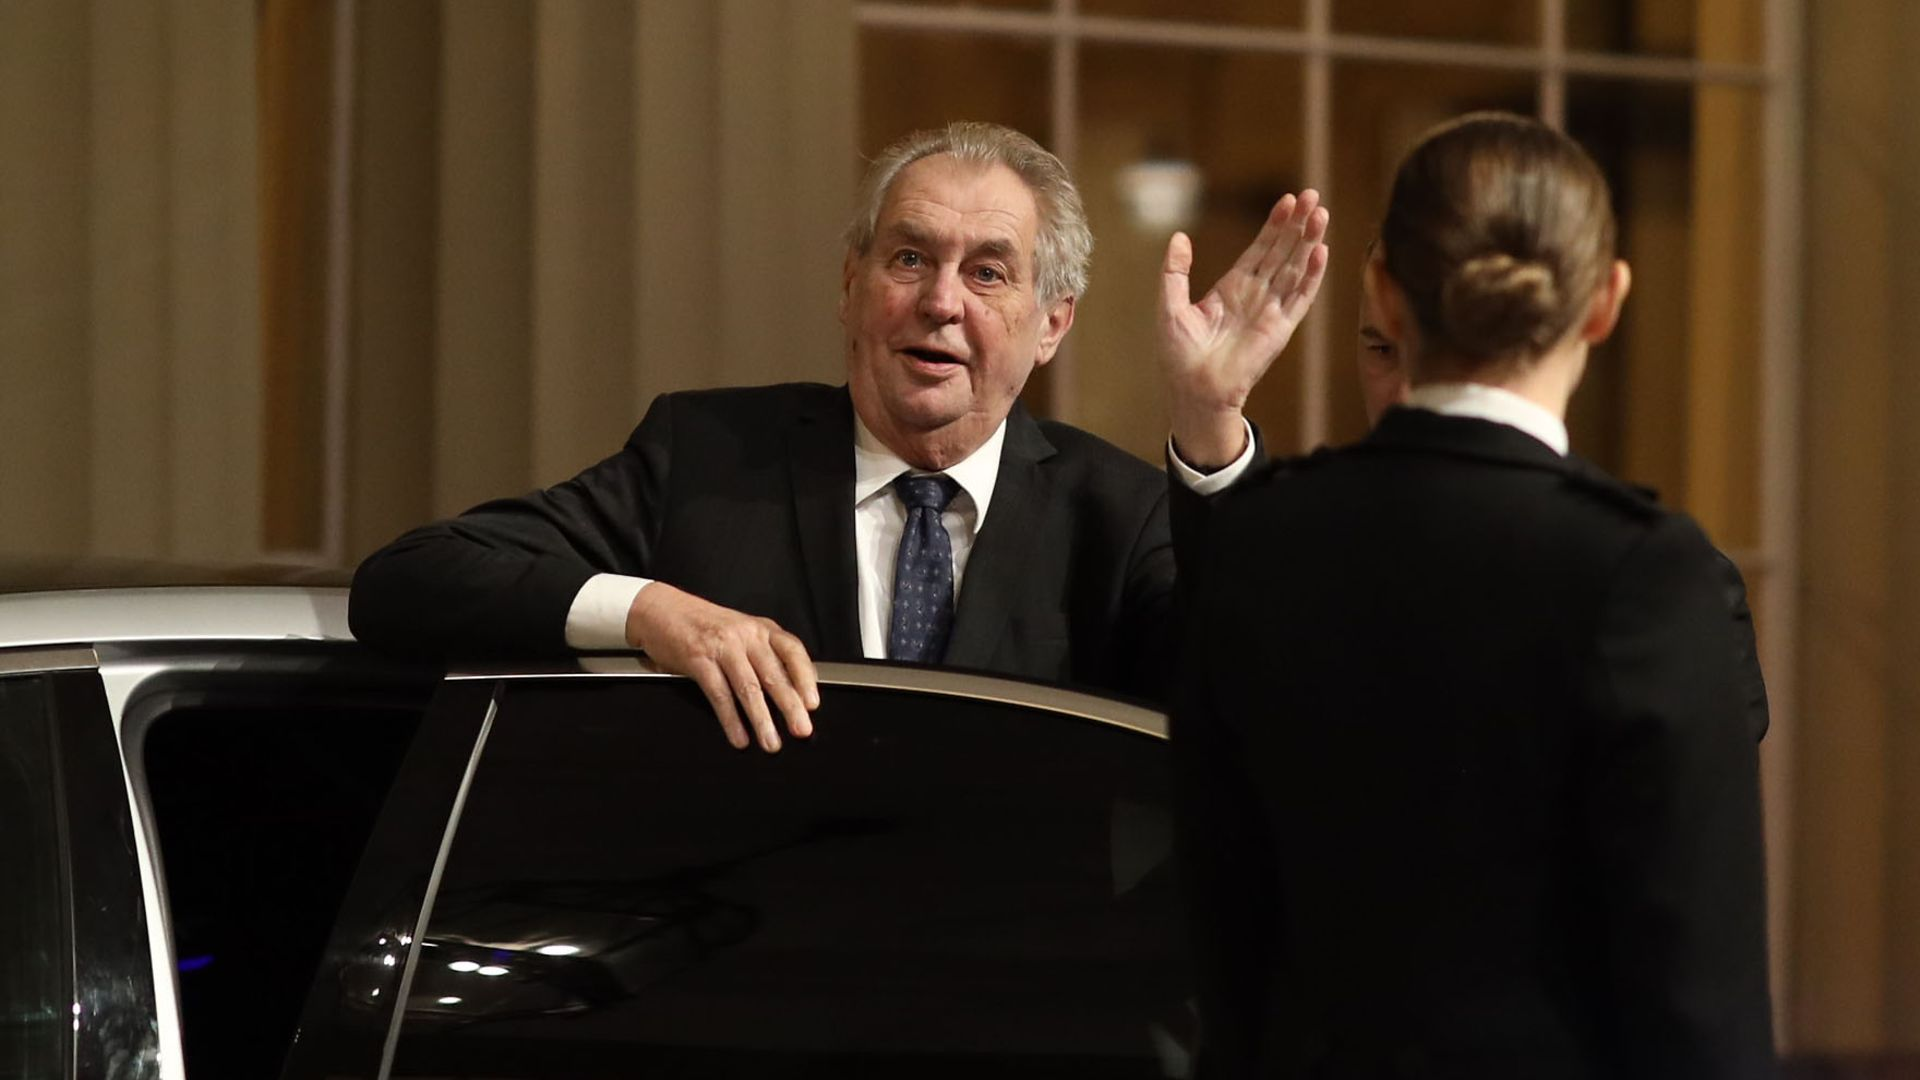 President of the Czech Republic Milos Zeman arriving for a reception at Buckingham Palace, London for Nato leaders to mark 70 years of the Nato alliance. - Credit: PA